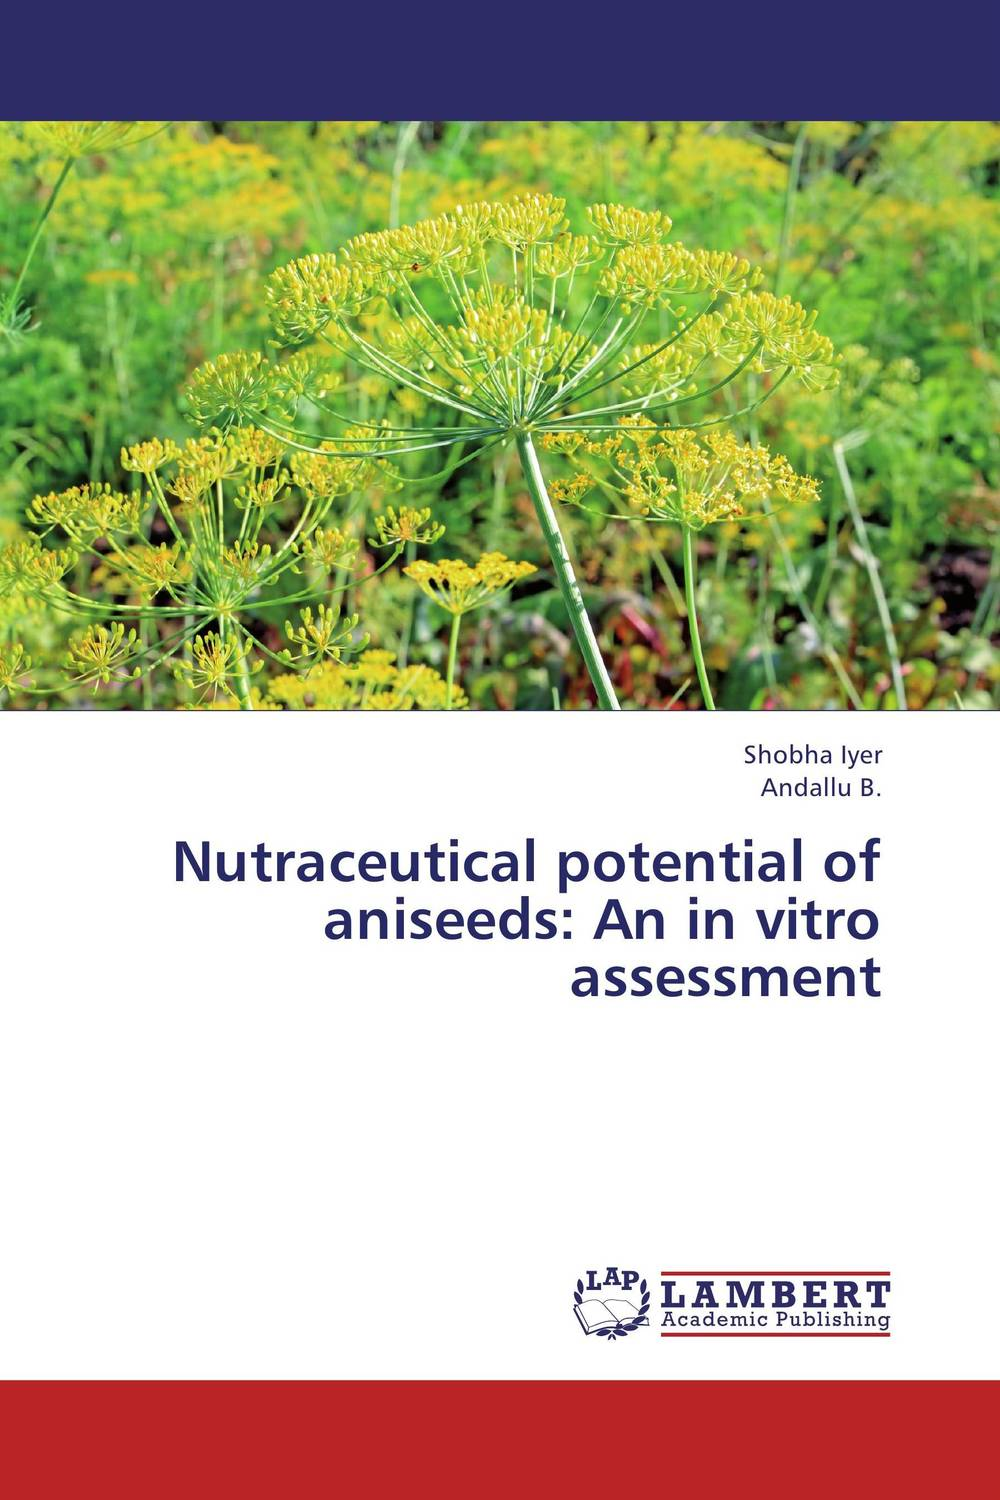 Nutraceutical potential of aniseeds: An in vitro assessment phytochemical investigation of the flavonoids